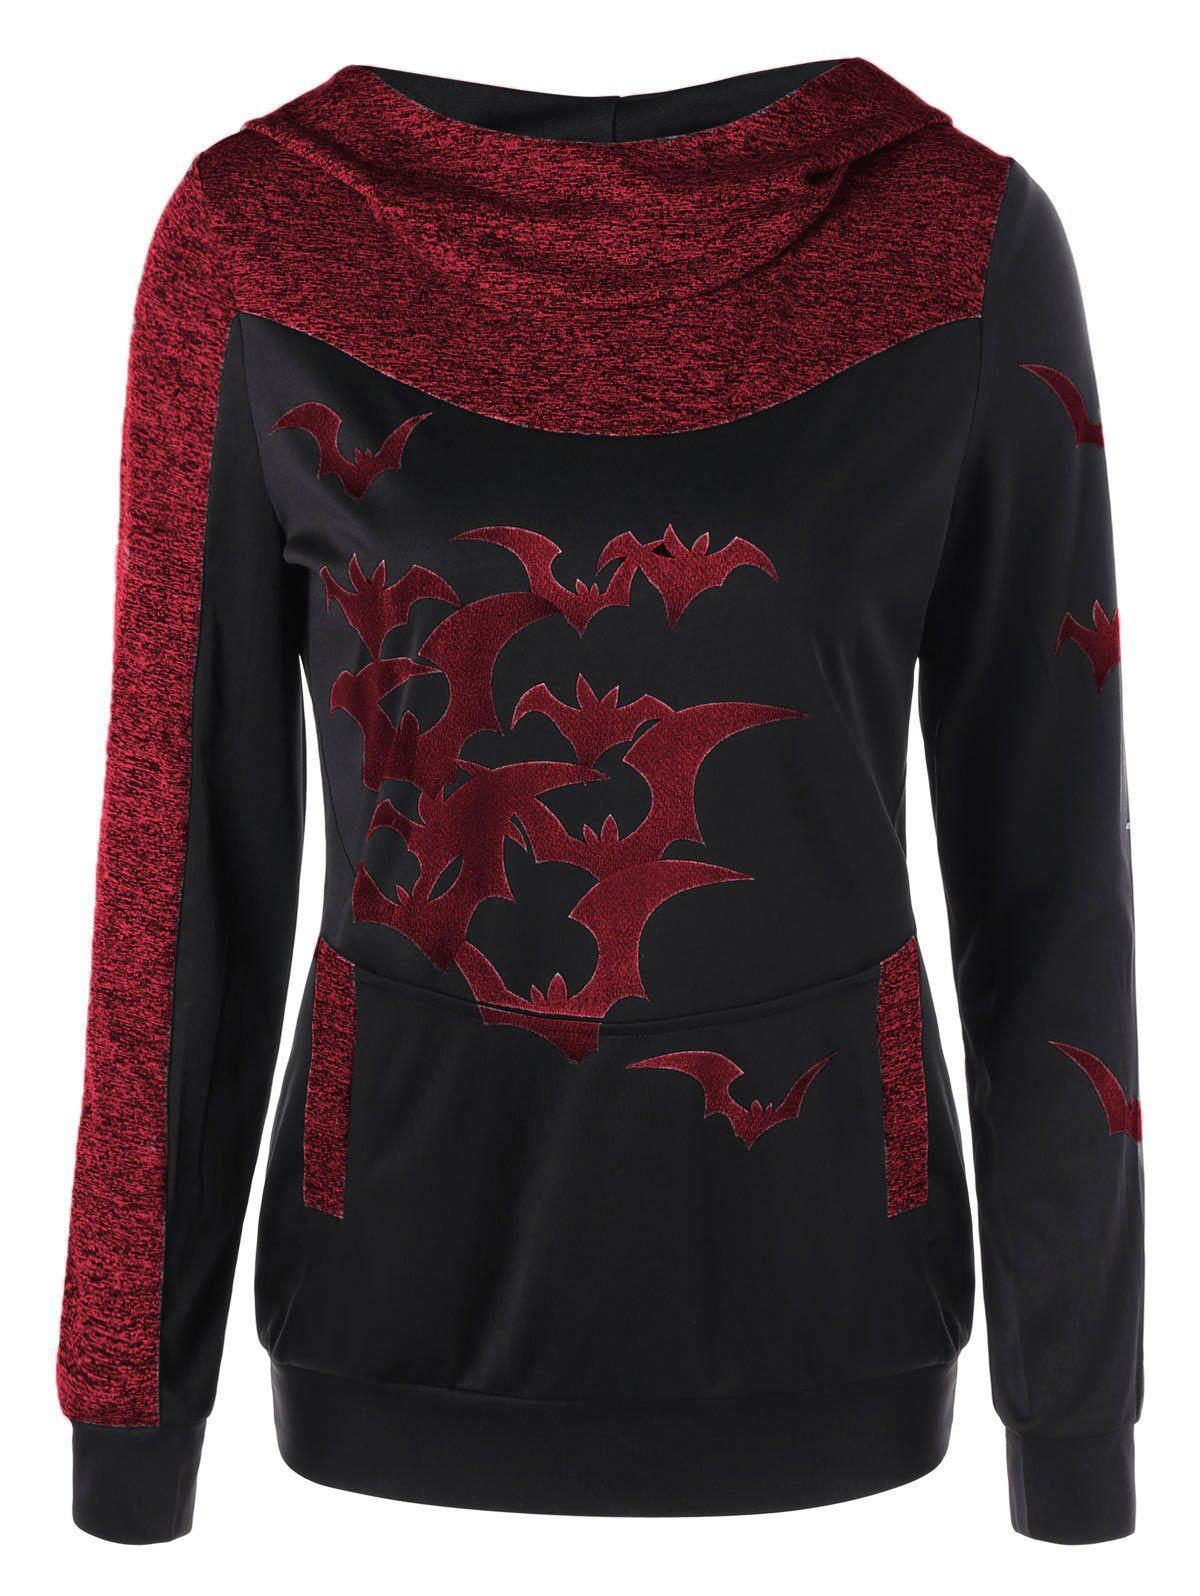 Halloween Marled Bat Print HoodieWOMEN<br><br>Size: 2XL; Color: RED; Material: Rayon,Spandex; Shirt Length: Regular; Sleeve Length: Full; Style: Casual; Pattern Style: Animal; Season: Fall,Spring; Weight: 0.3400kg; Package Contents: 1 x Hoodie;